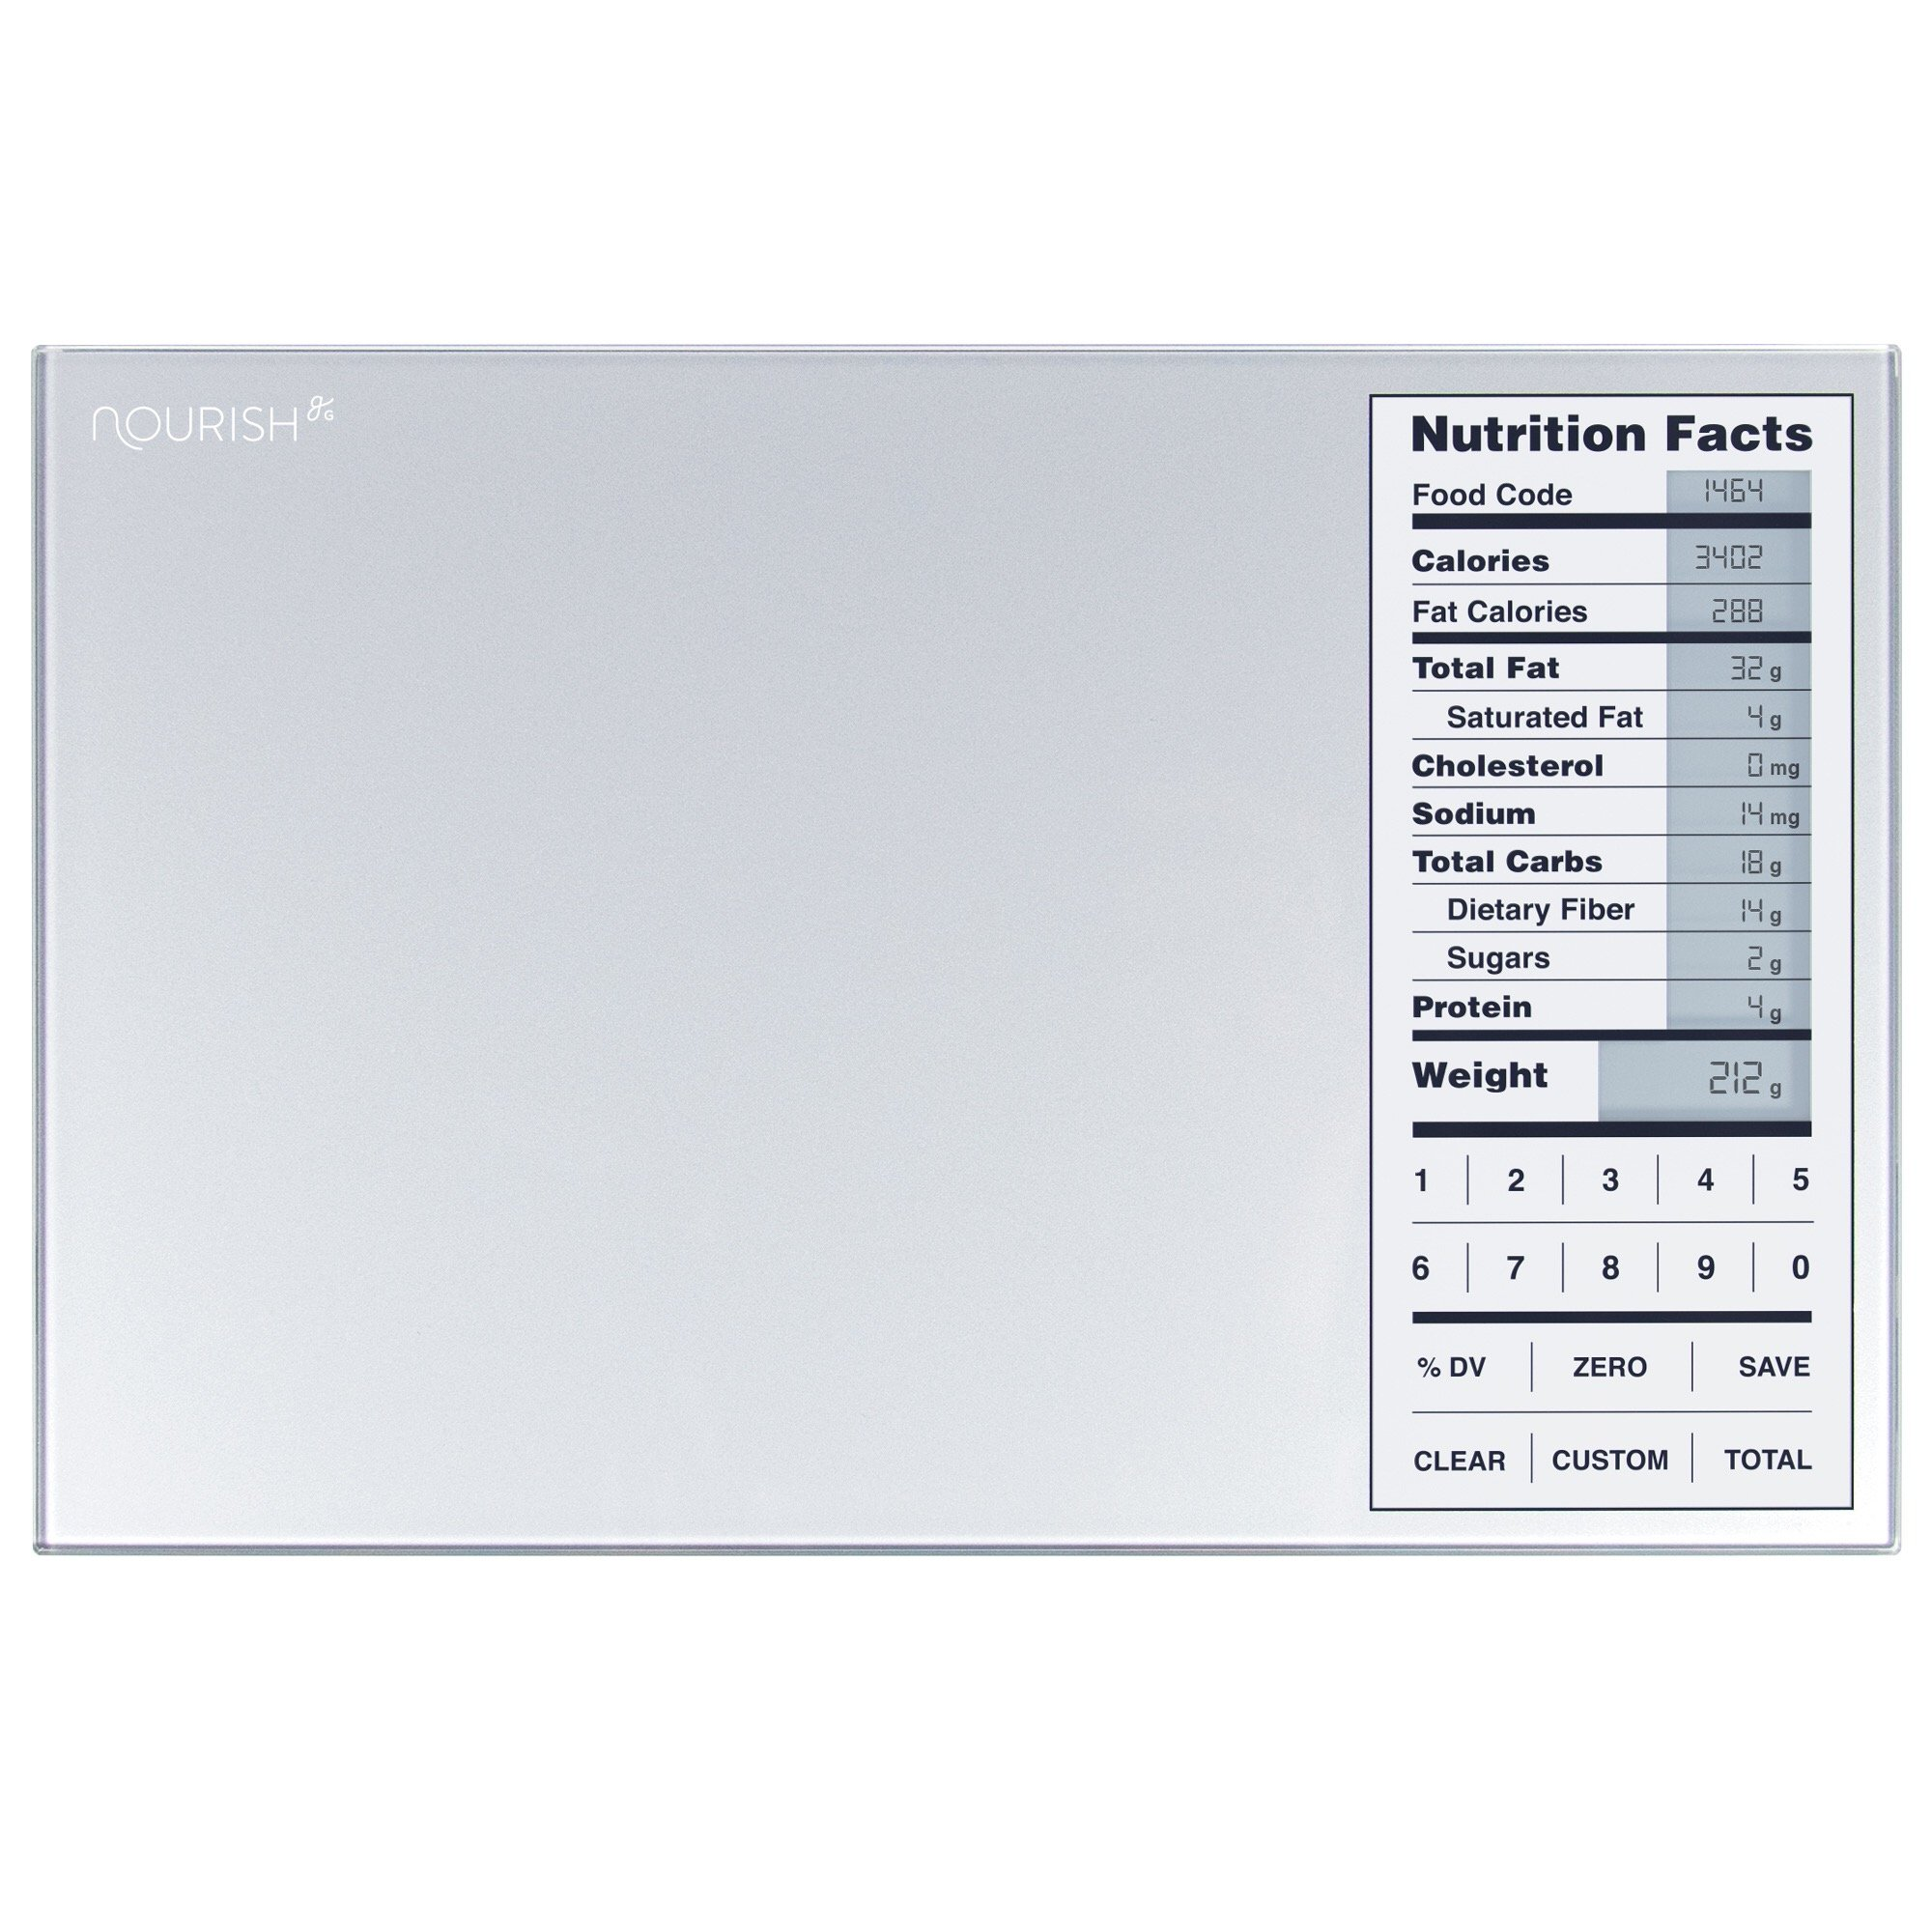 Digital Kitchen Food Portion Scale by GreaterGoods, with Perfect Portions Nutritional Facts Display